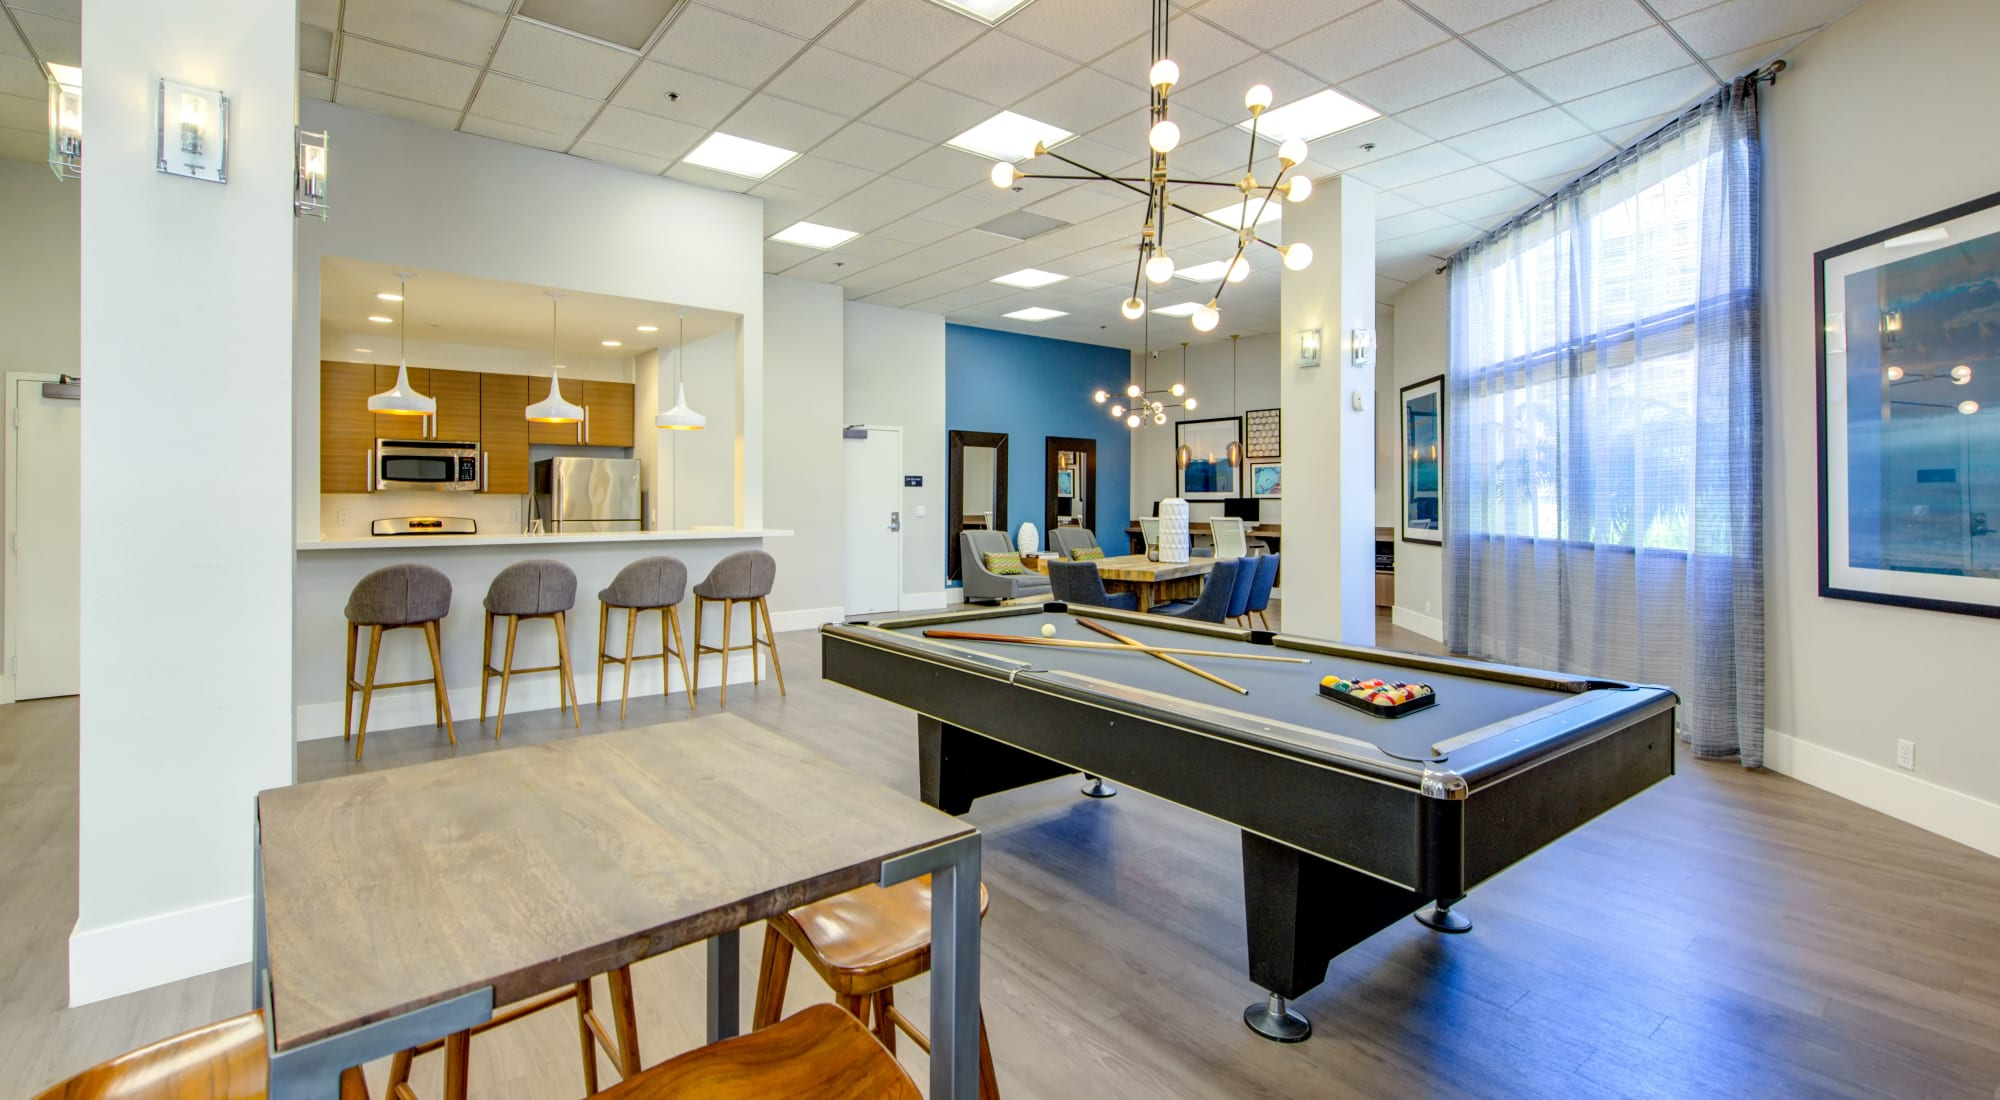 Apply to live at Sofi at 3rd in Long Beach, California